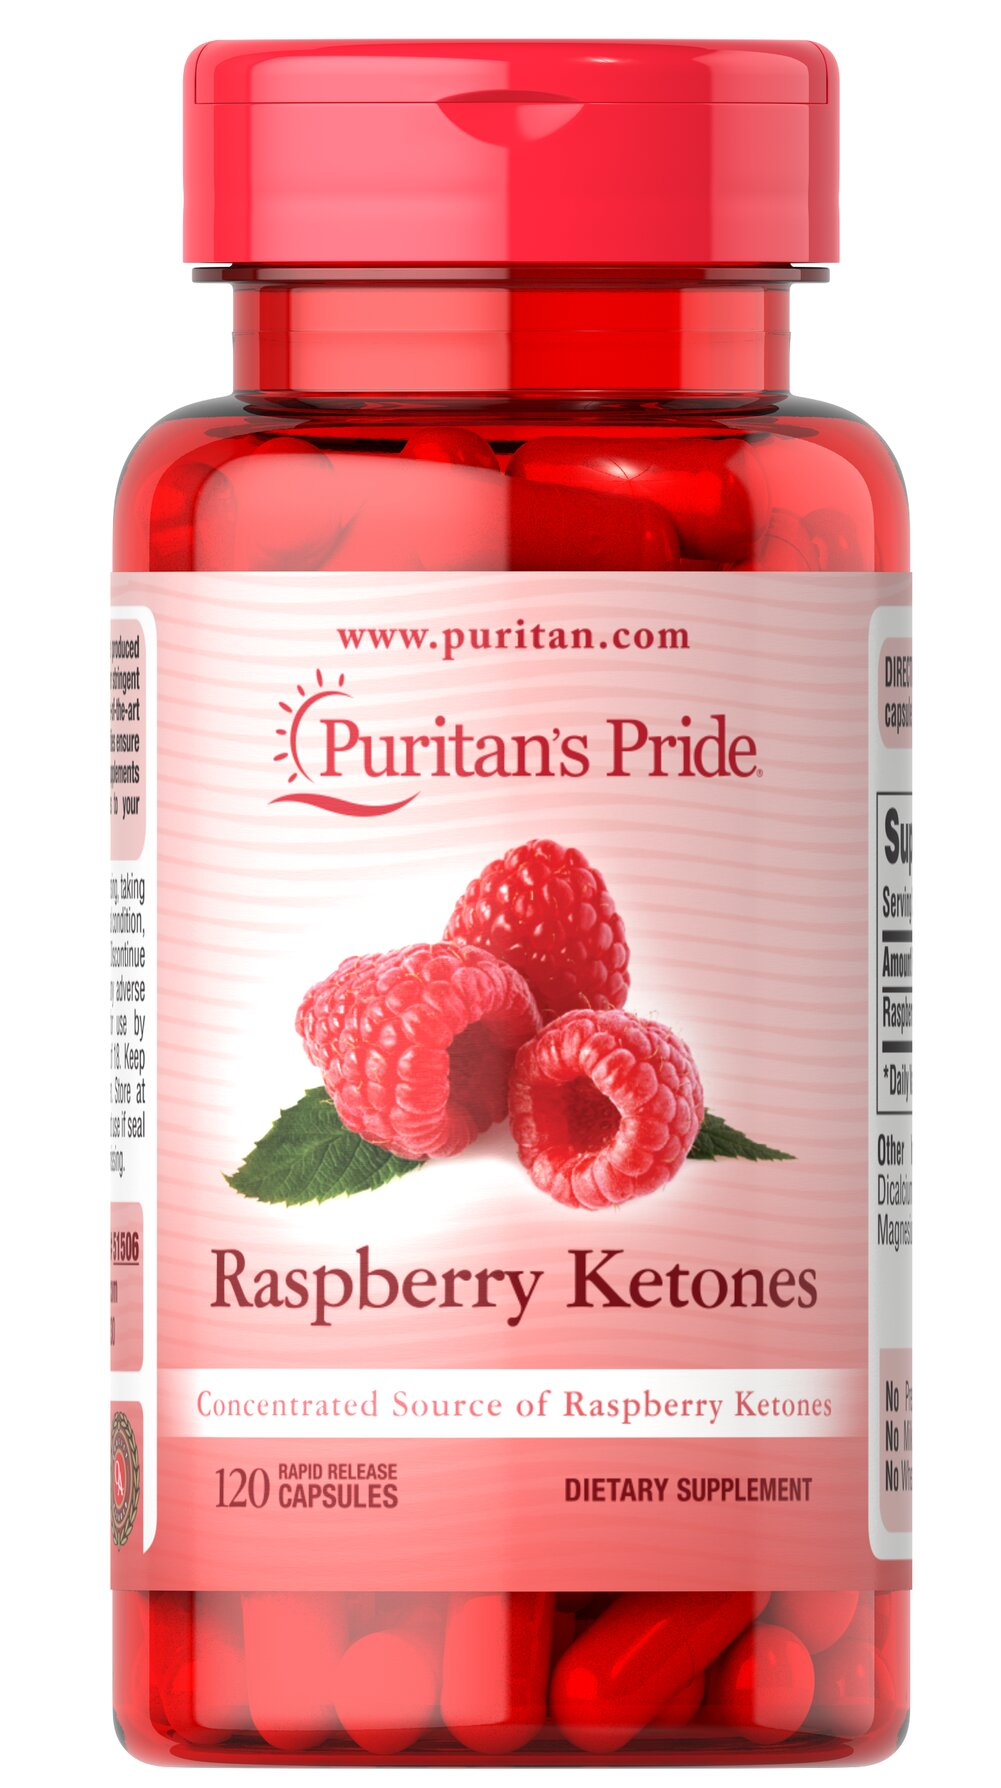 Raspberry Ketones 100 mg <p><span></span>Concentrated source of Raspberry Ketones.</p><p><span></span>100mg in one serving.</p><p><span></span>Rapid release capsules.</p><p>Our Raspberry Ketones are highly concentrated. Each serving of this dietary supplement contains 100mg of raspberry ketones.</p> 120 Rapid Release Capsules 100 mg $17.99